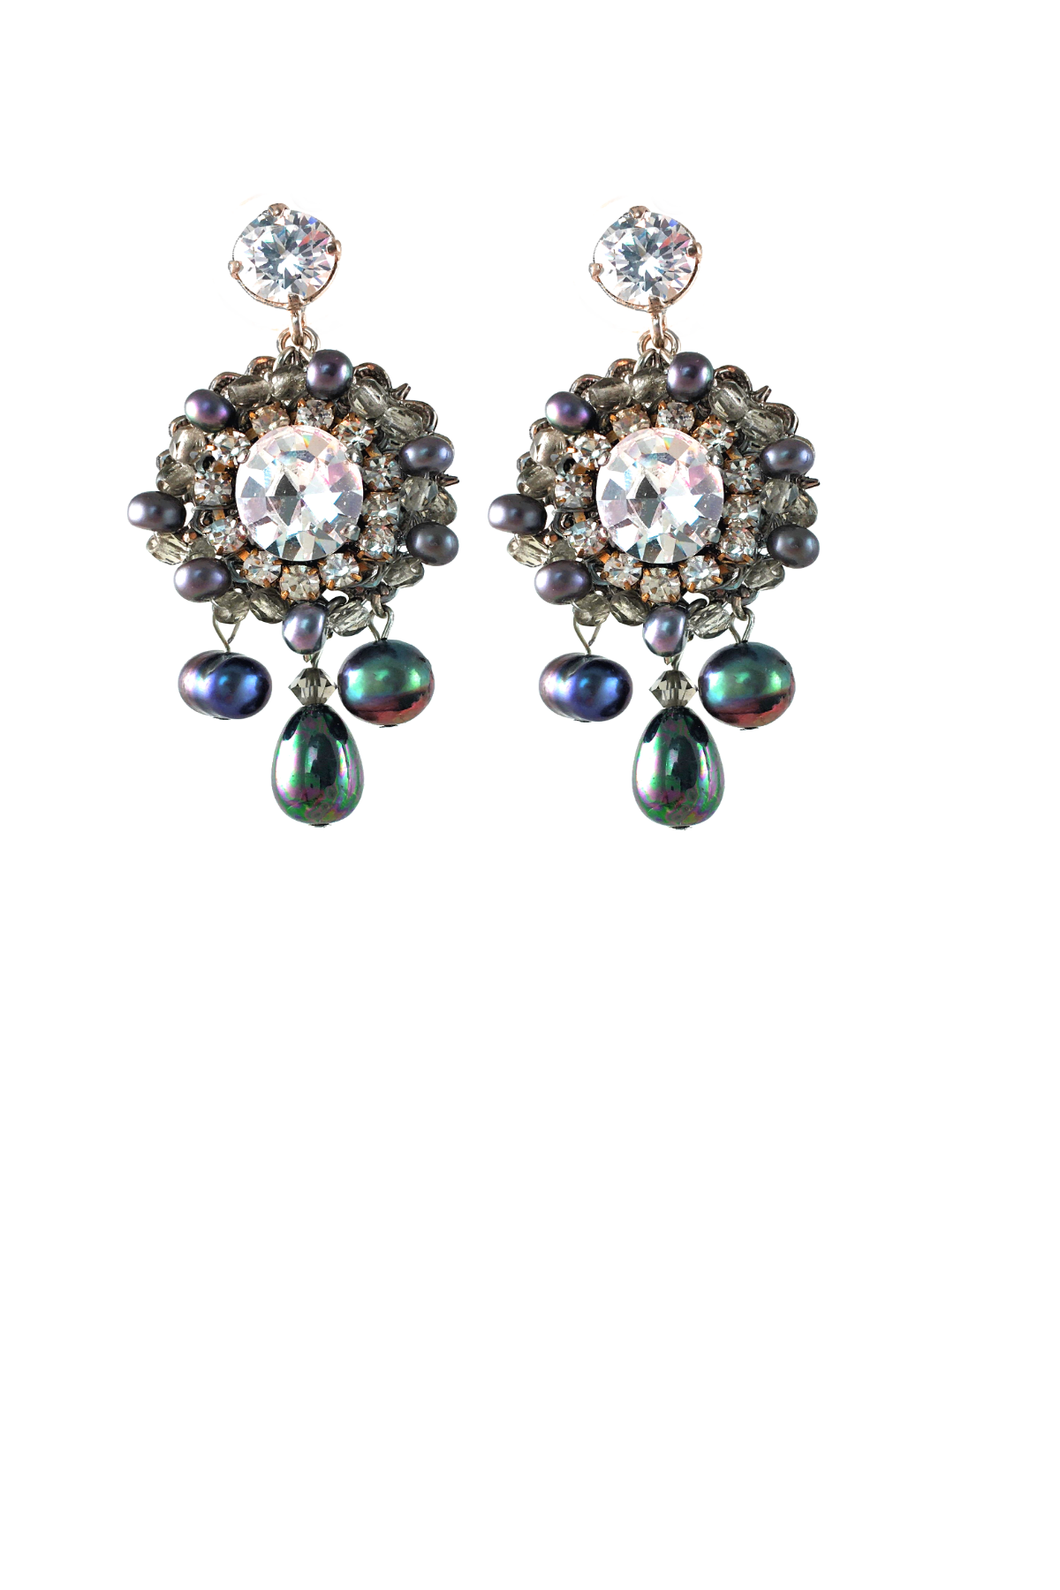 Broadway Pearls and Swarovski Crystals Earrings